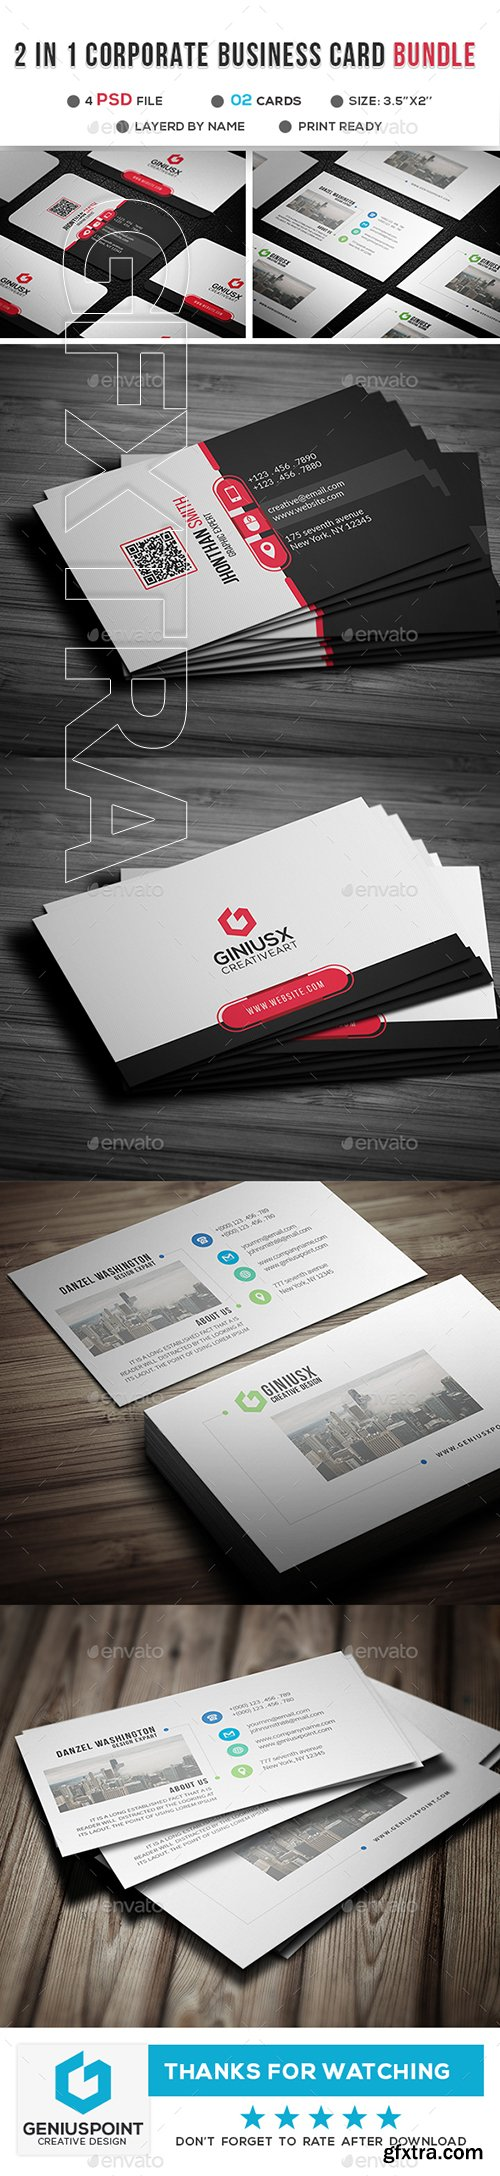 GraphicRiver - 2 in 1 Business Card Bundle 22865394